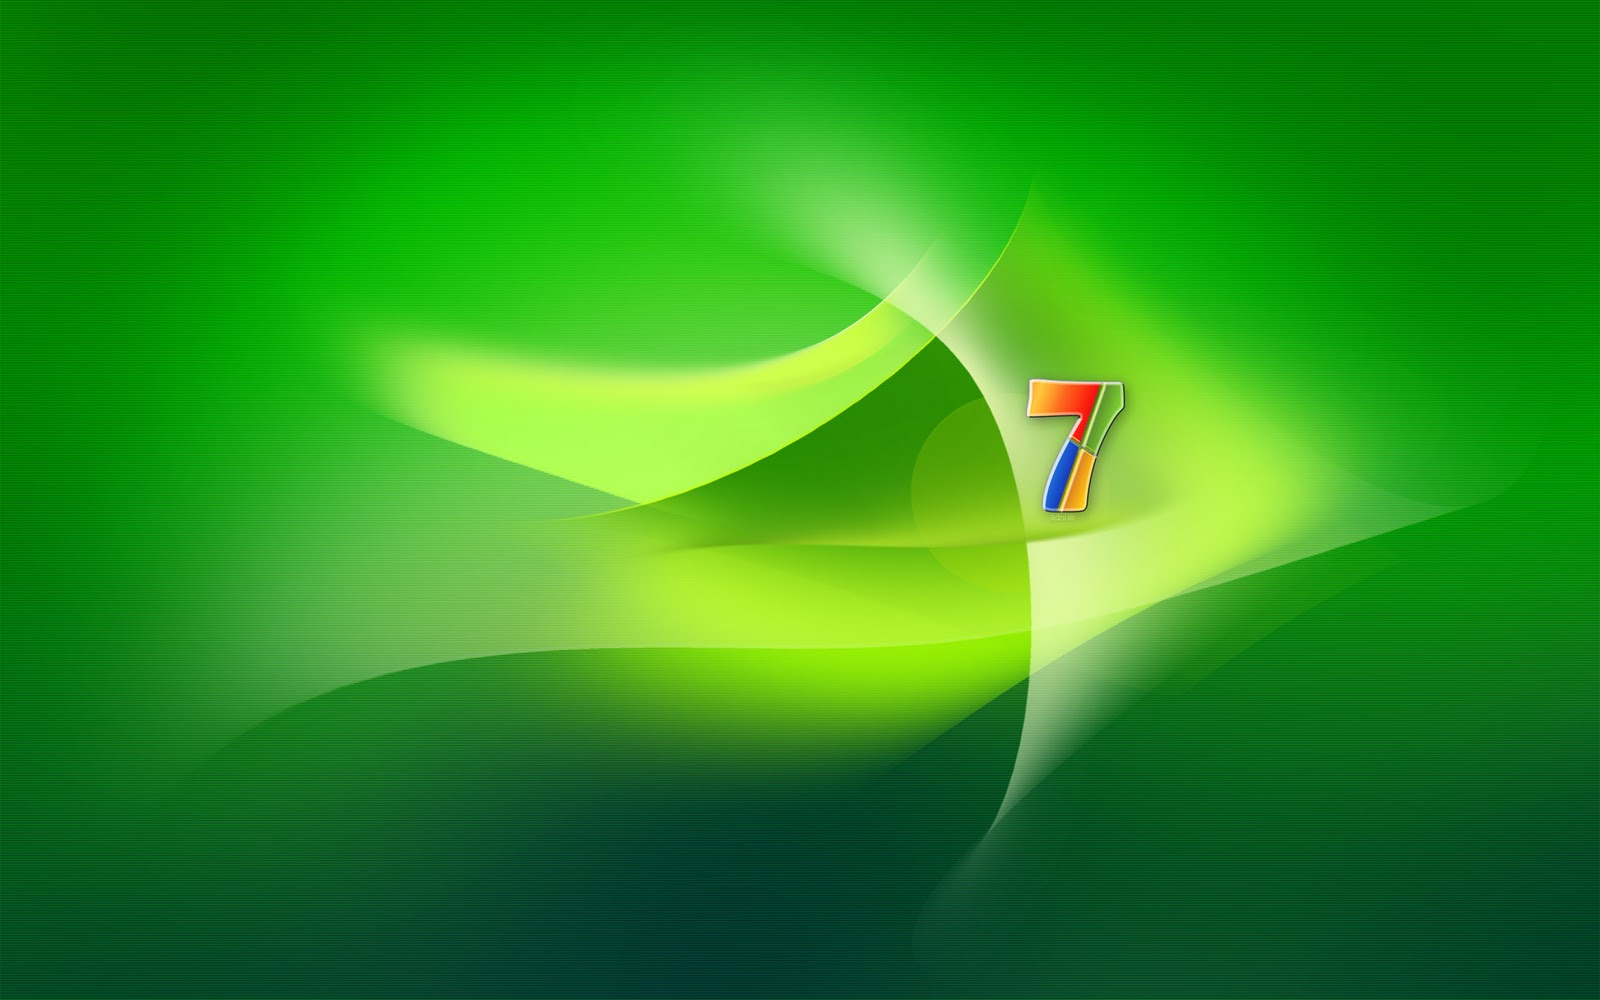 Windows 7 Theme Wallpapers Fresh Green 2012 37647674